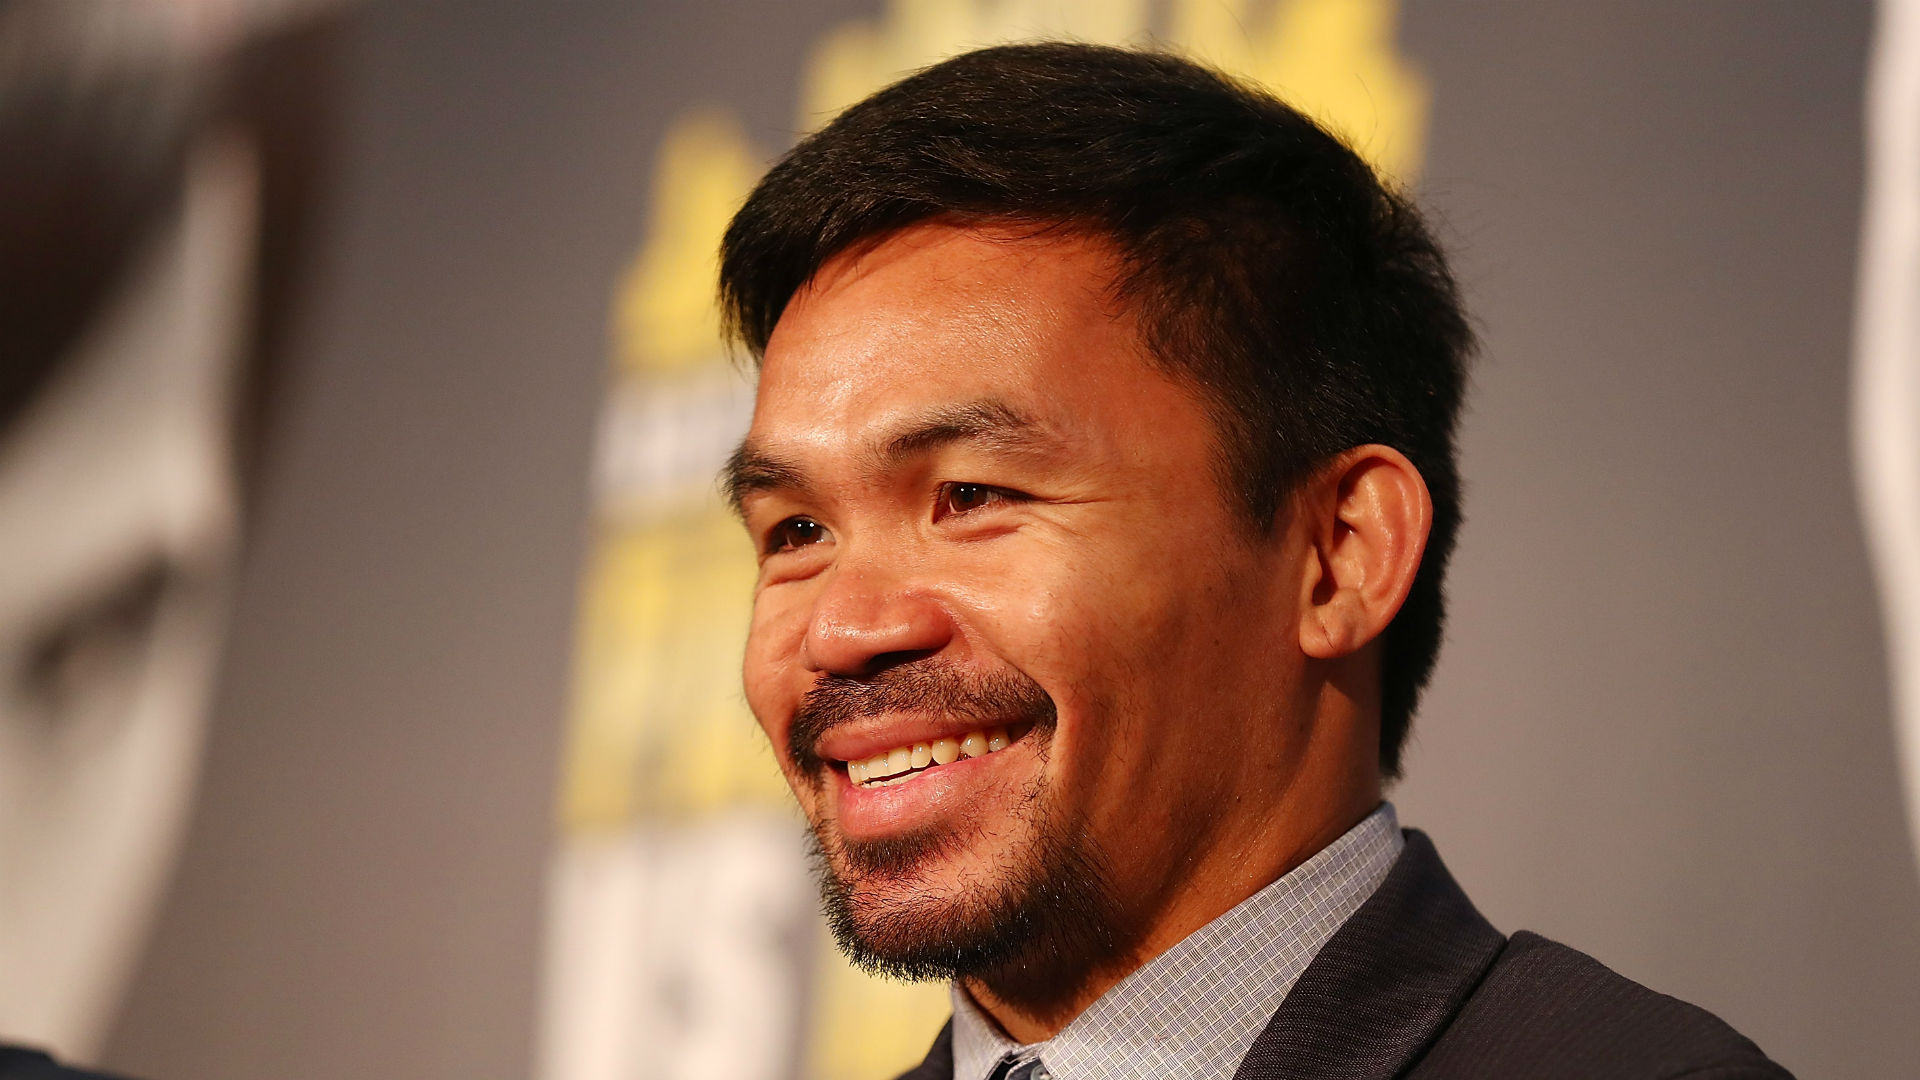 Manny Pacquiao reveals initial talks to fight Conor McGregor